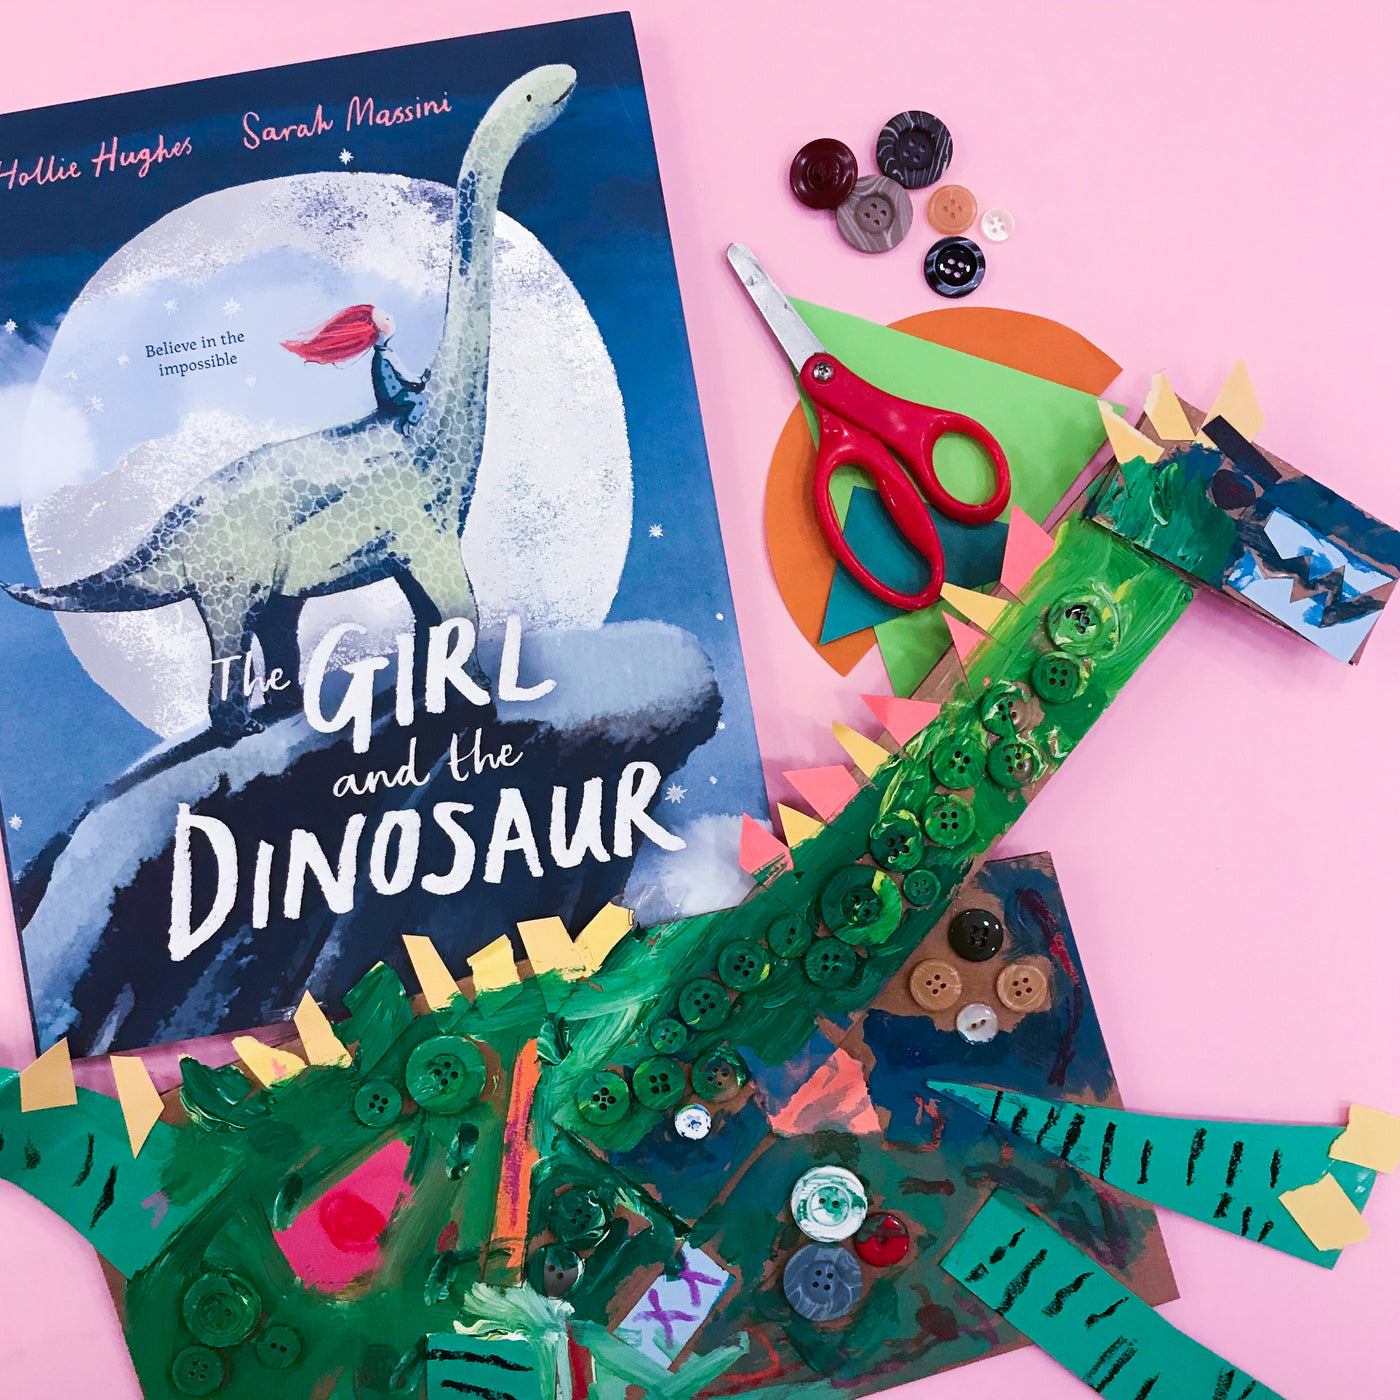 Virtual Art Class for kids based on the book The Girl and the Dinosaur